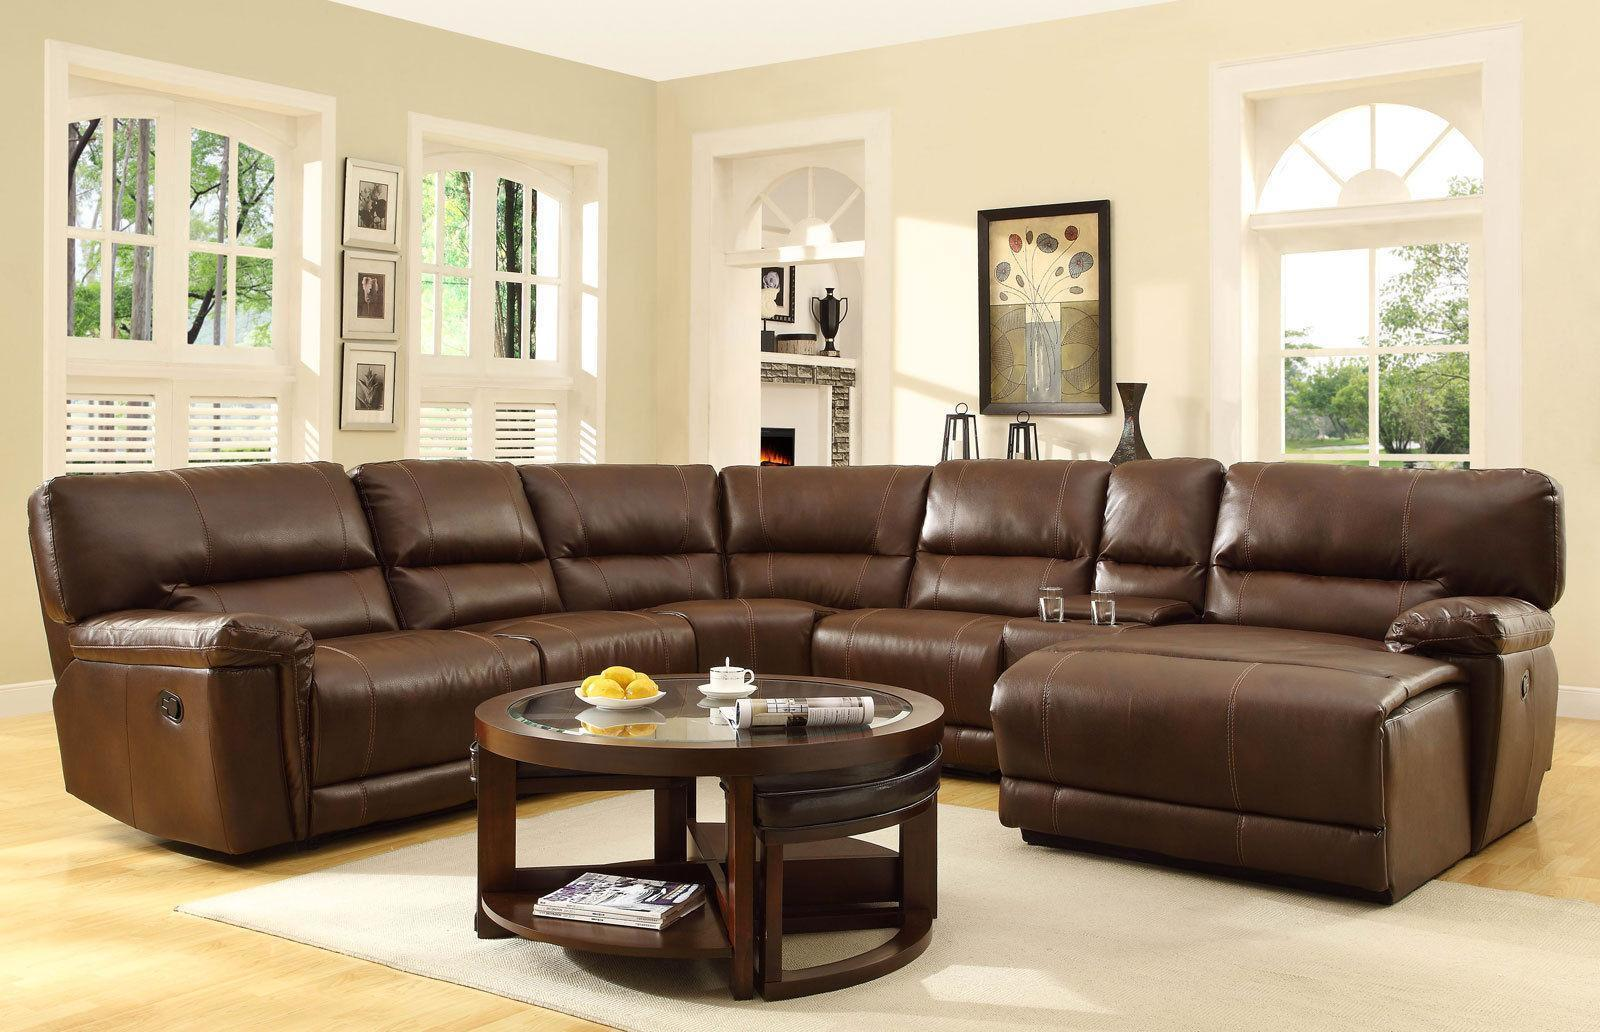 Galway Living Room Brown Bonded Leather Recliner Sofa